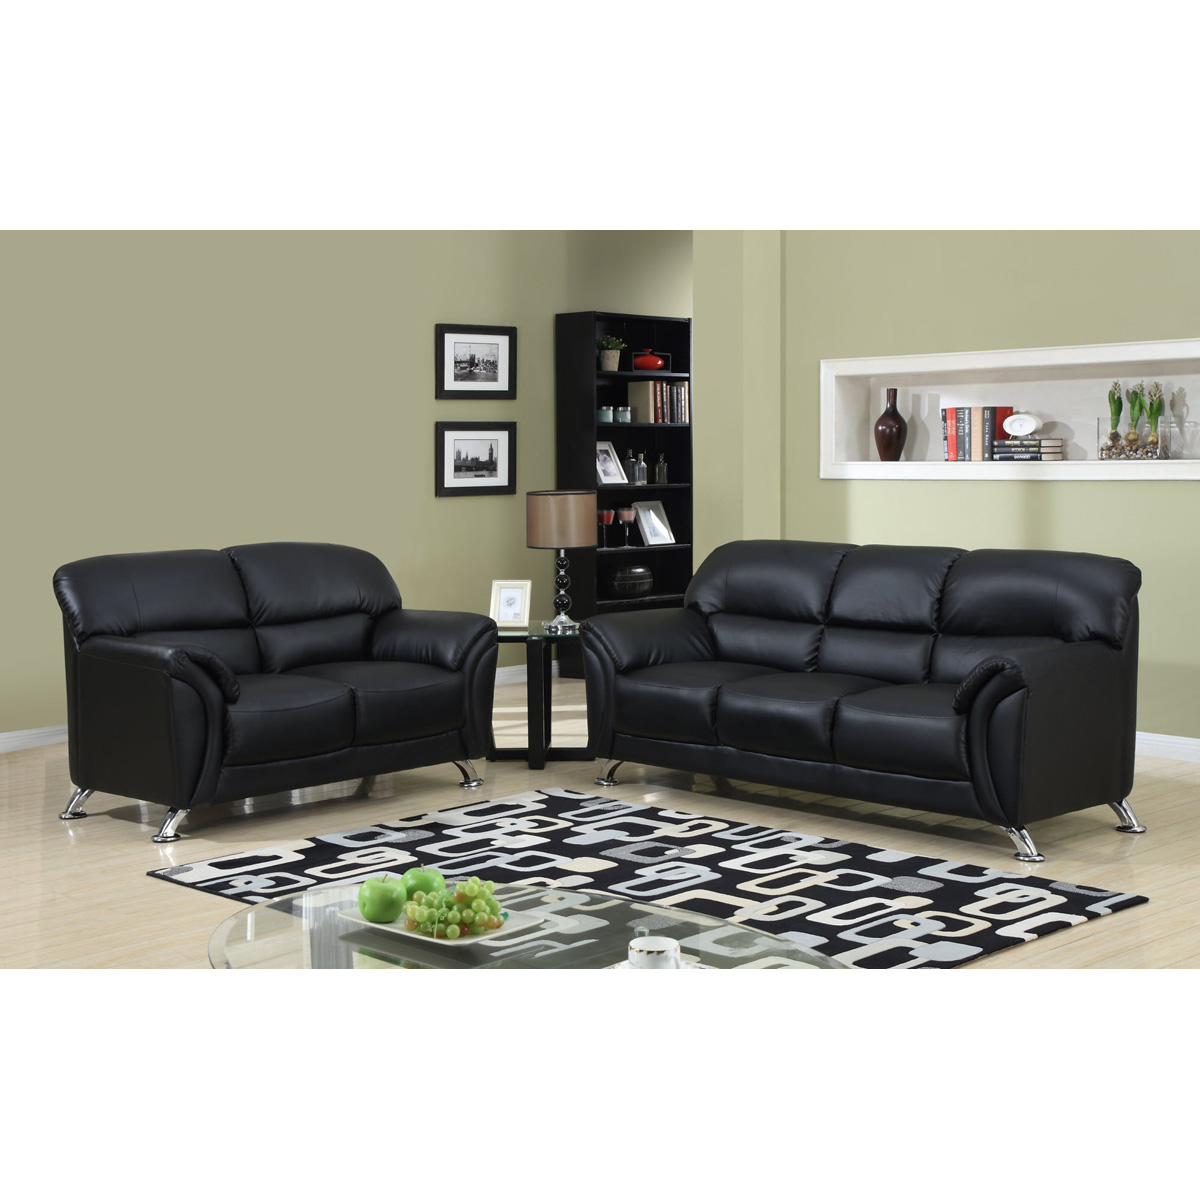 Maxwell Sofa Set In Black Leather Look